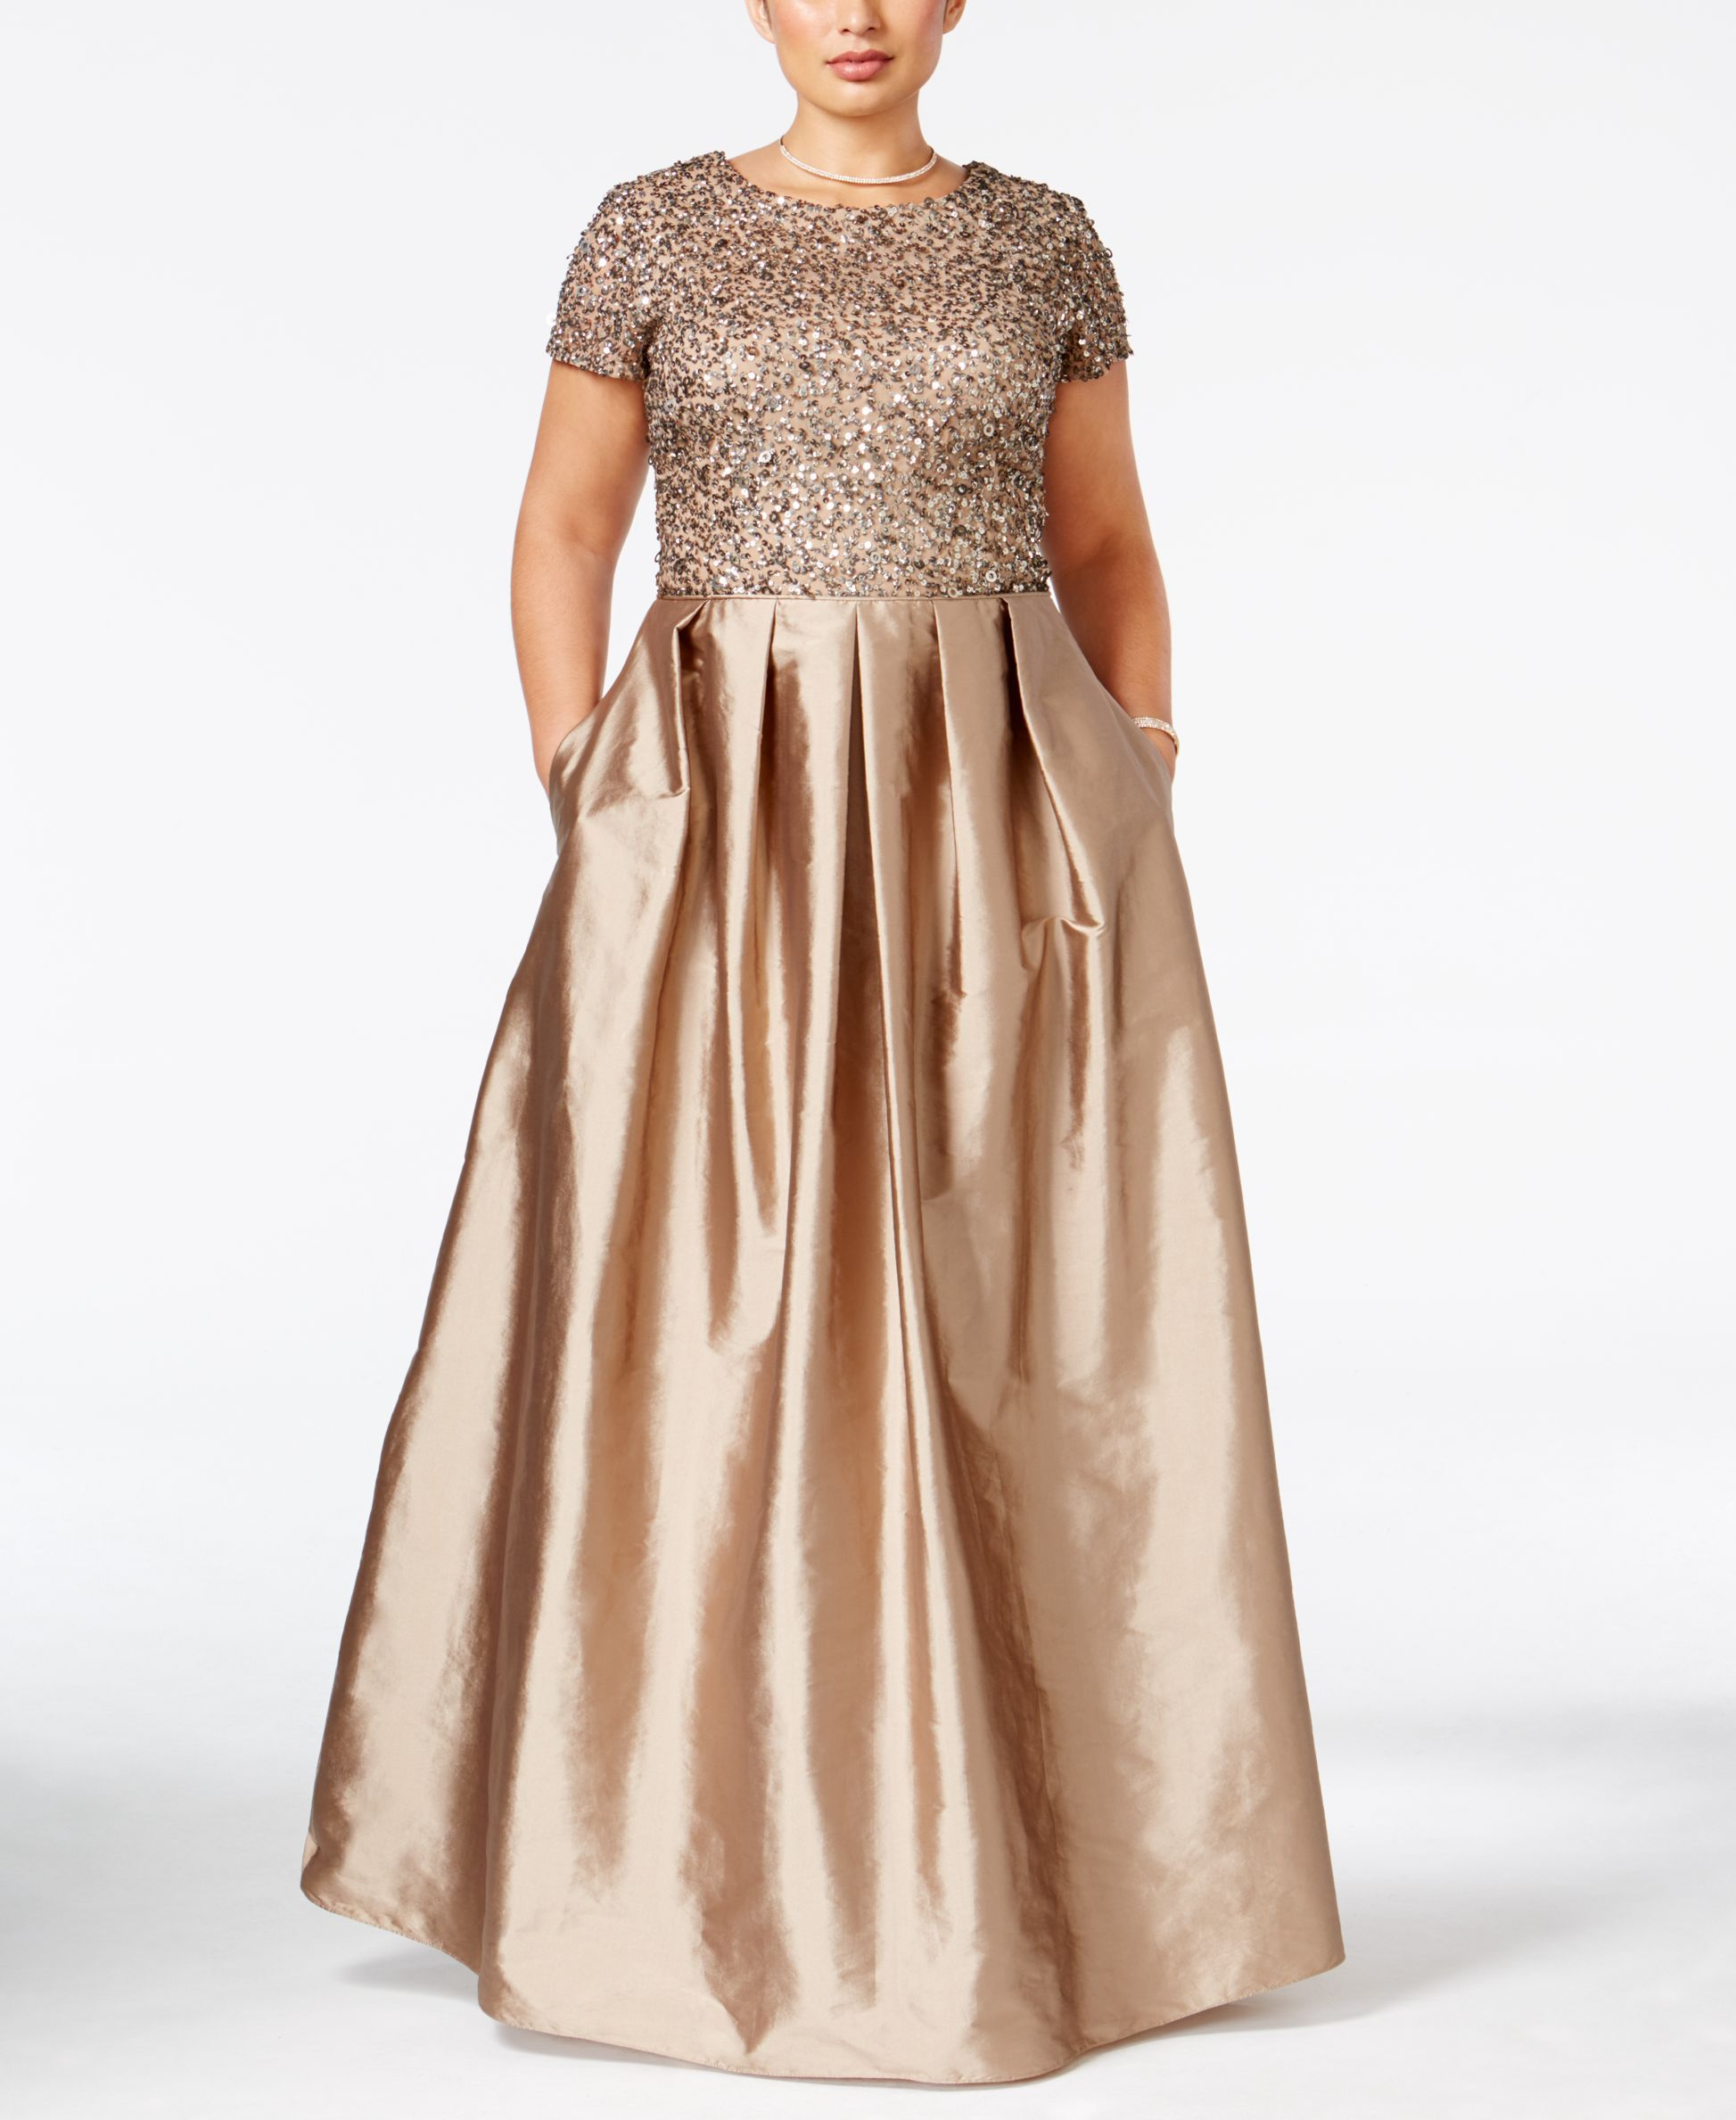 Adrianna Papell Plus Size Beaded A-Line Gown | Adrianna papell ...